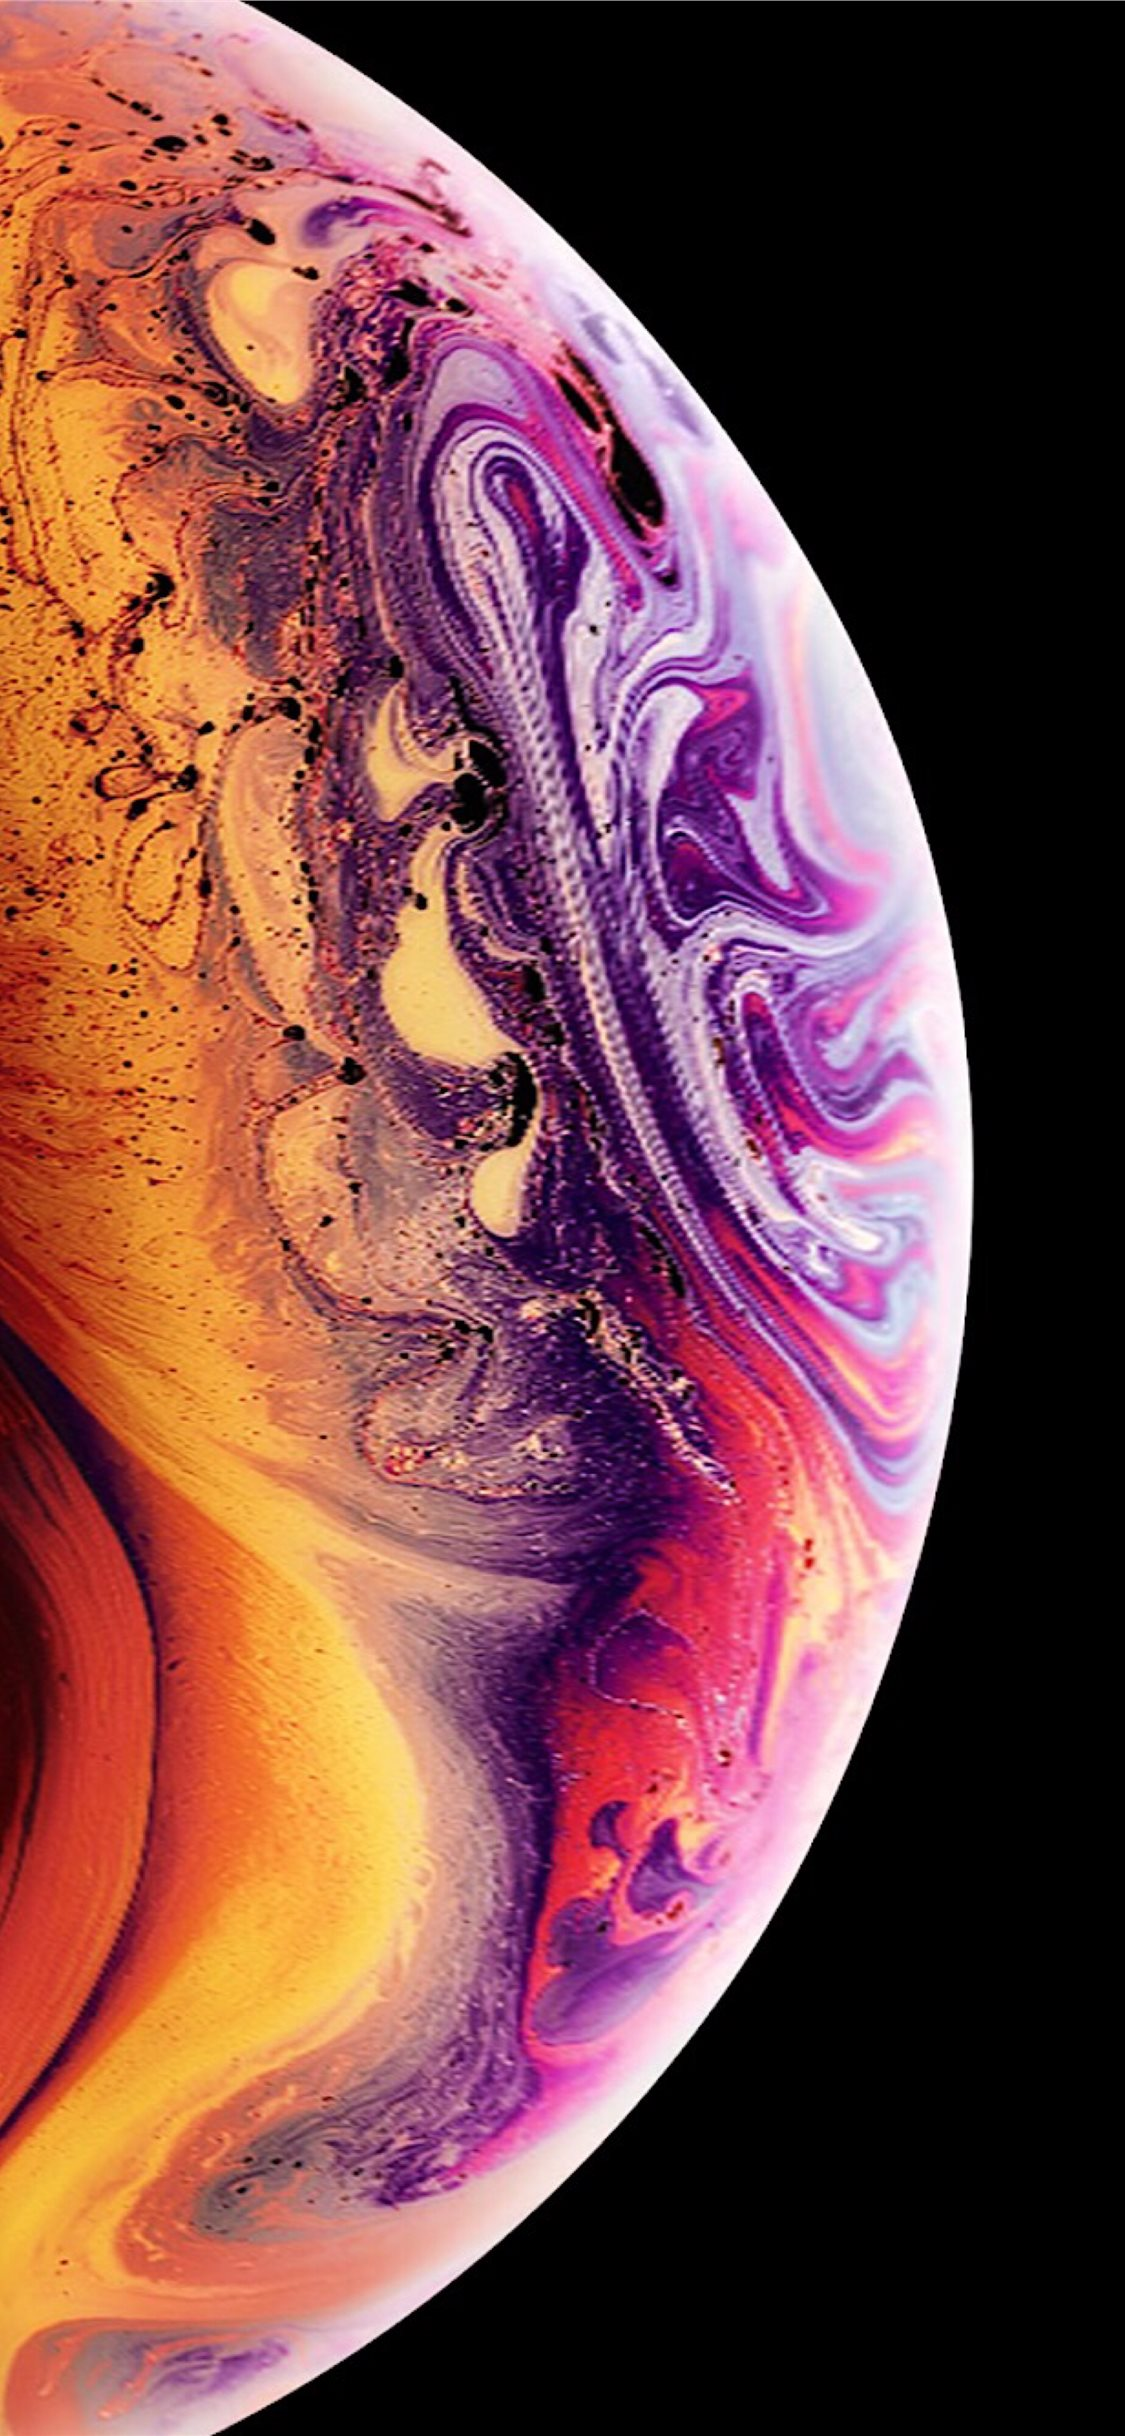 iphone 11 and iphone 11 pro wallpapers ilikewallpaper iphone 11 and iphone 11 pro wallpapers